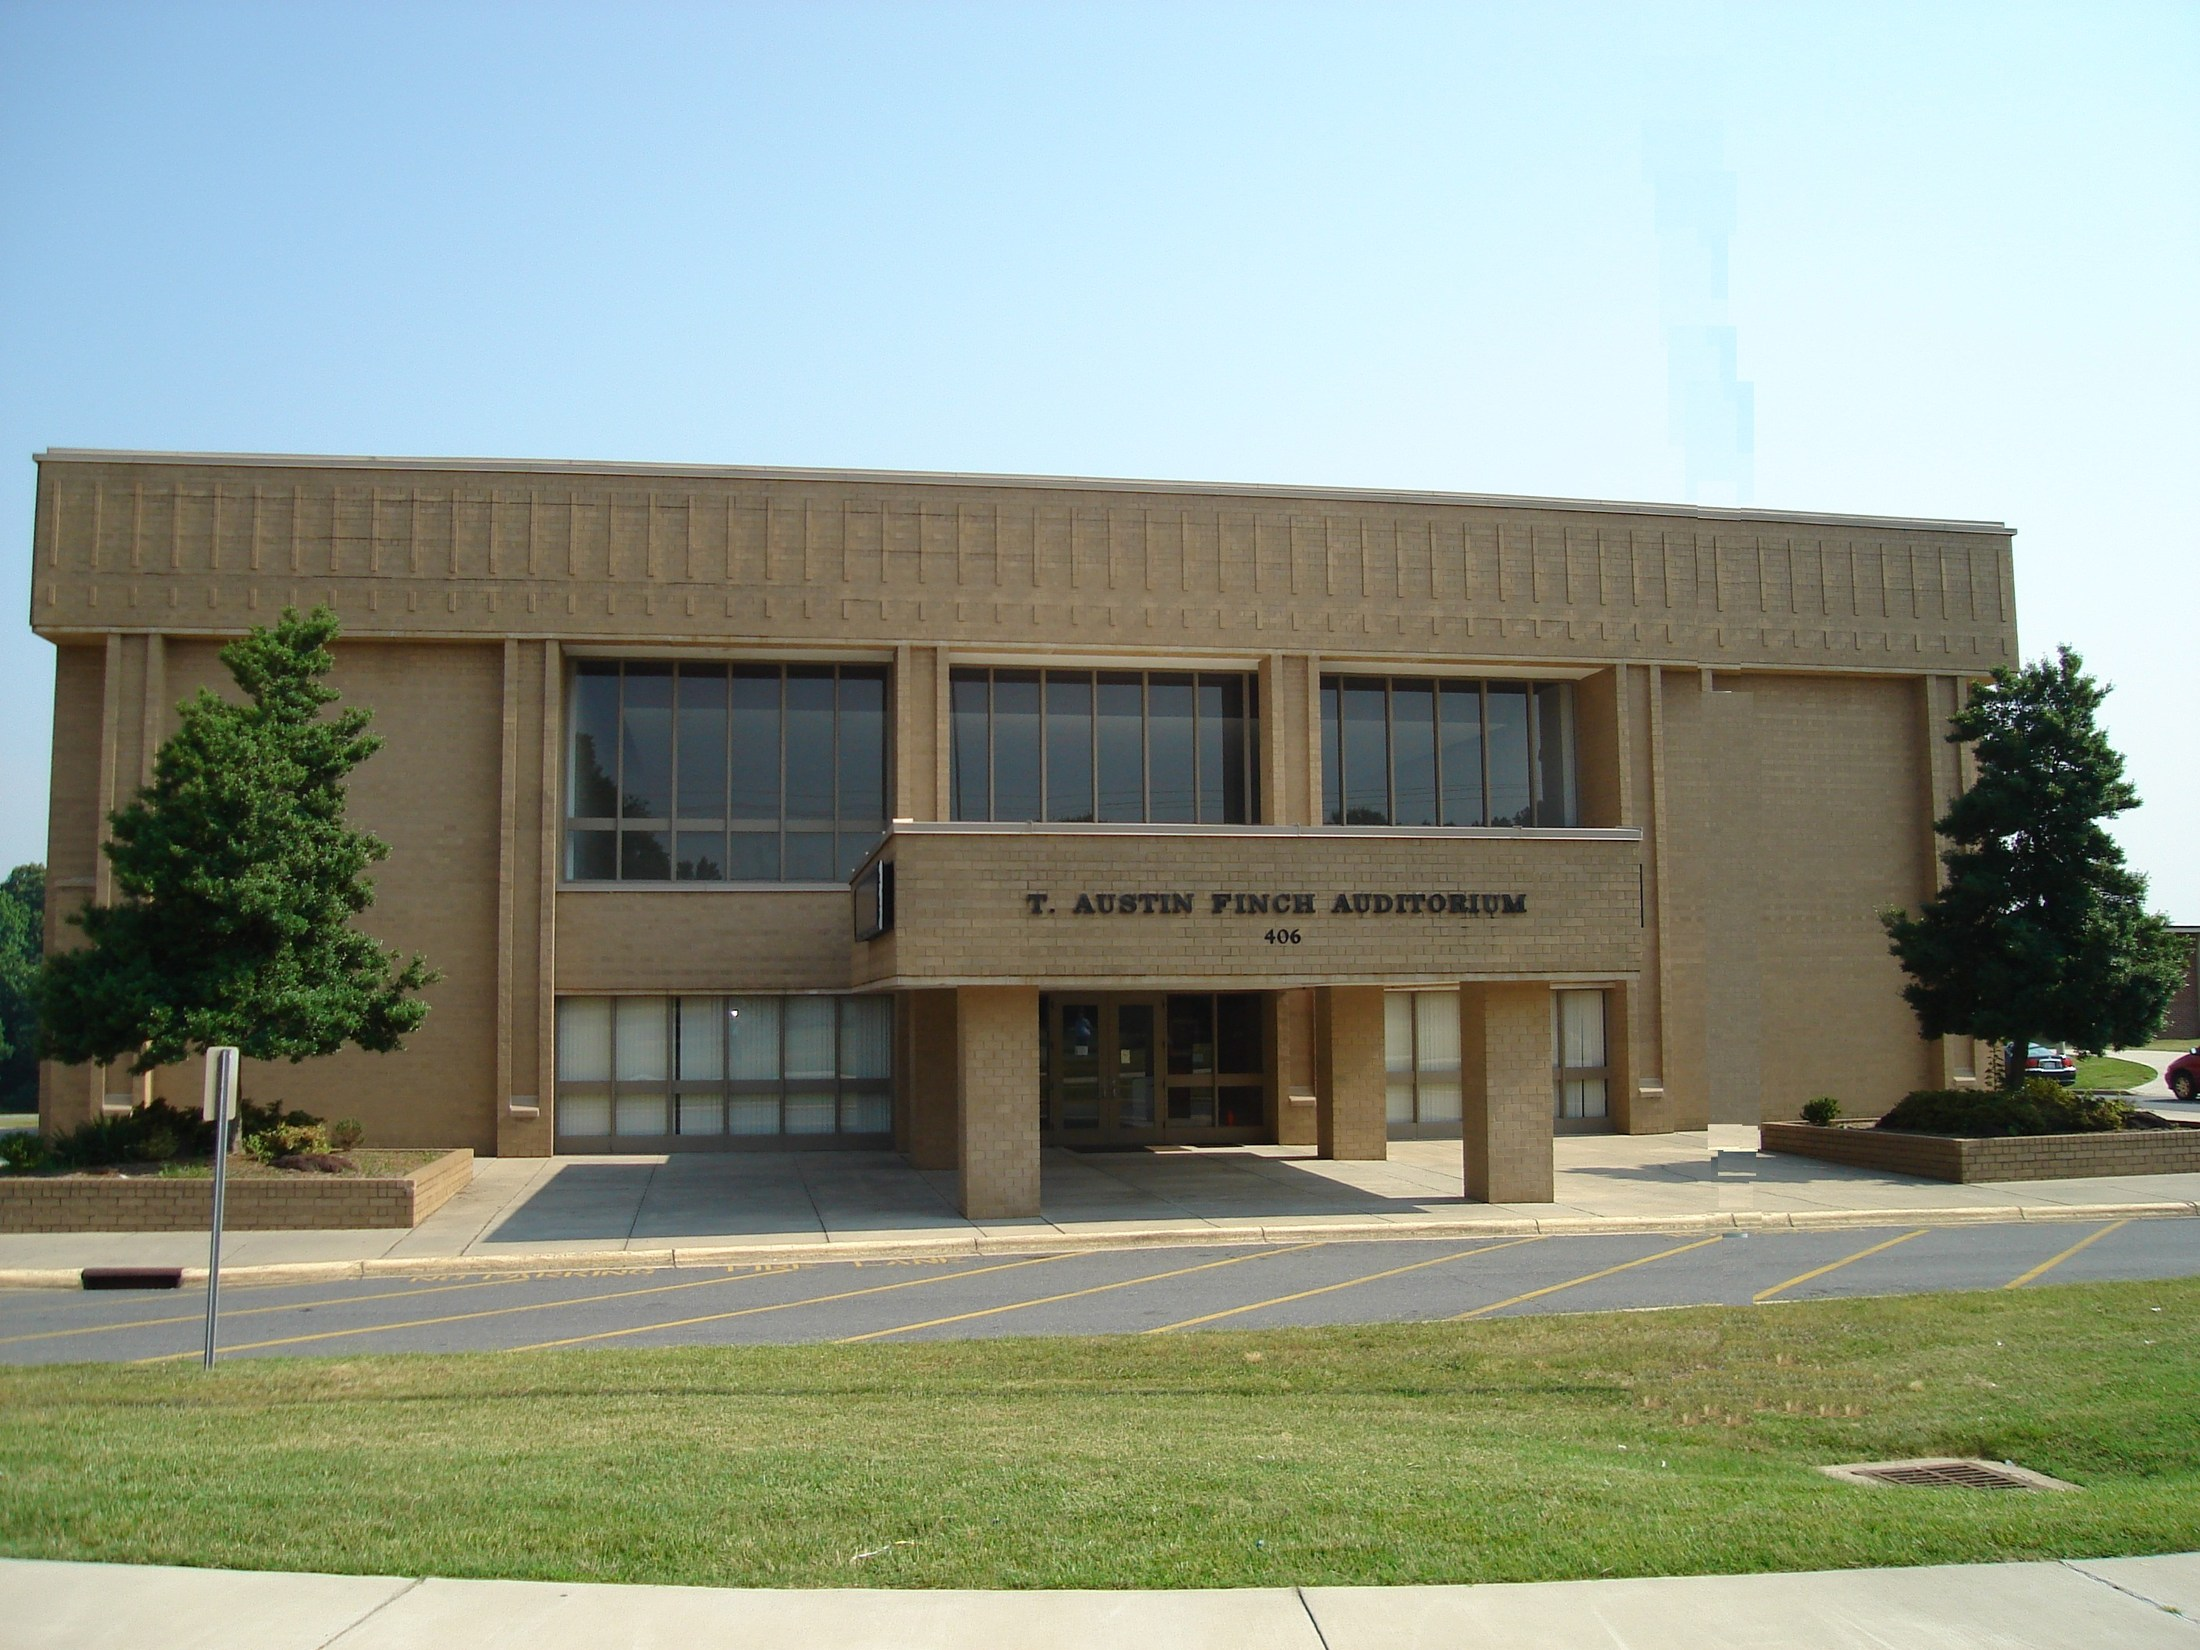 T. Austin Finch Auditorium